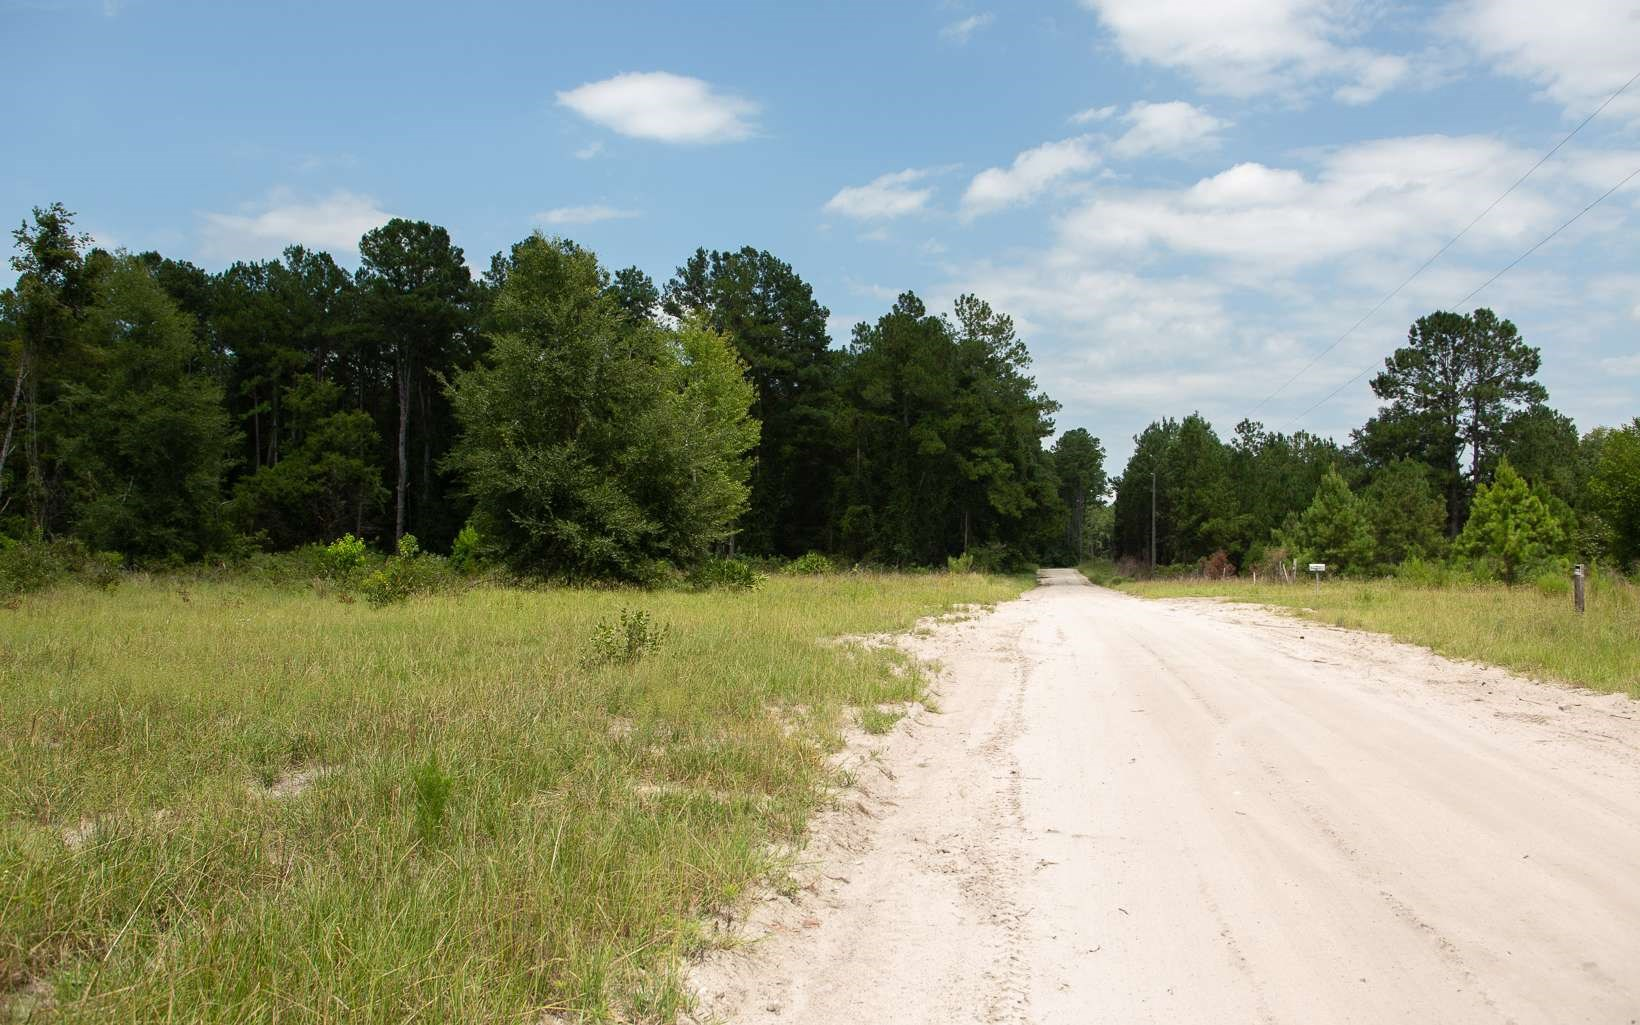 A popular boat ramp on the Suwannee river lies this 10 acres